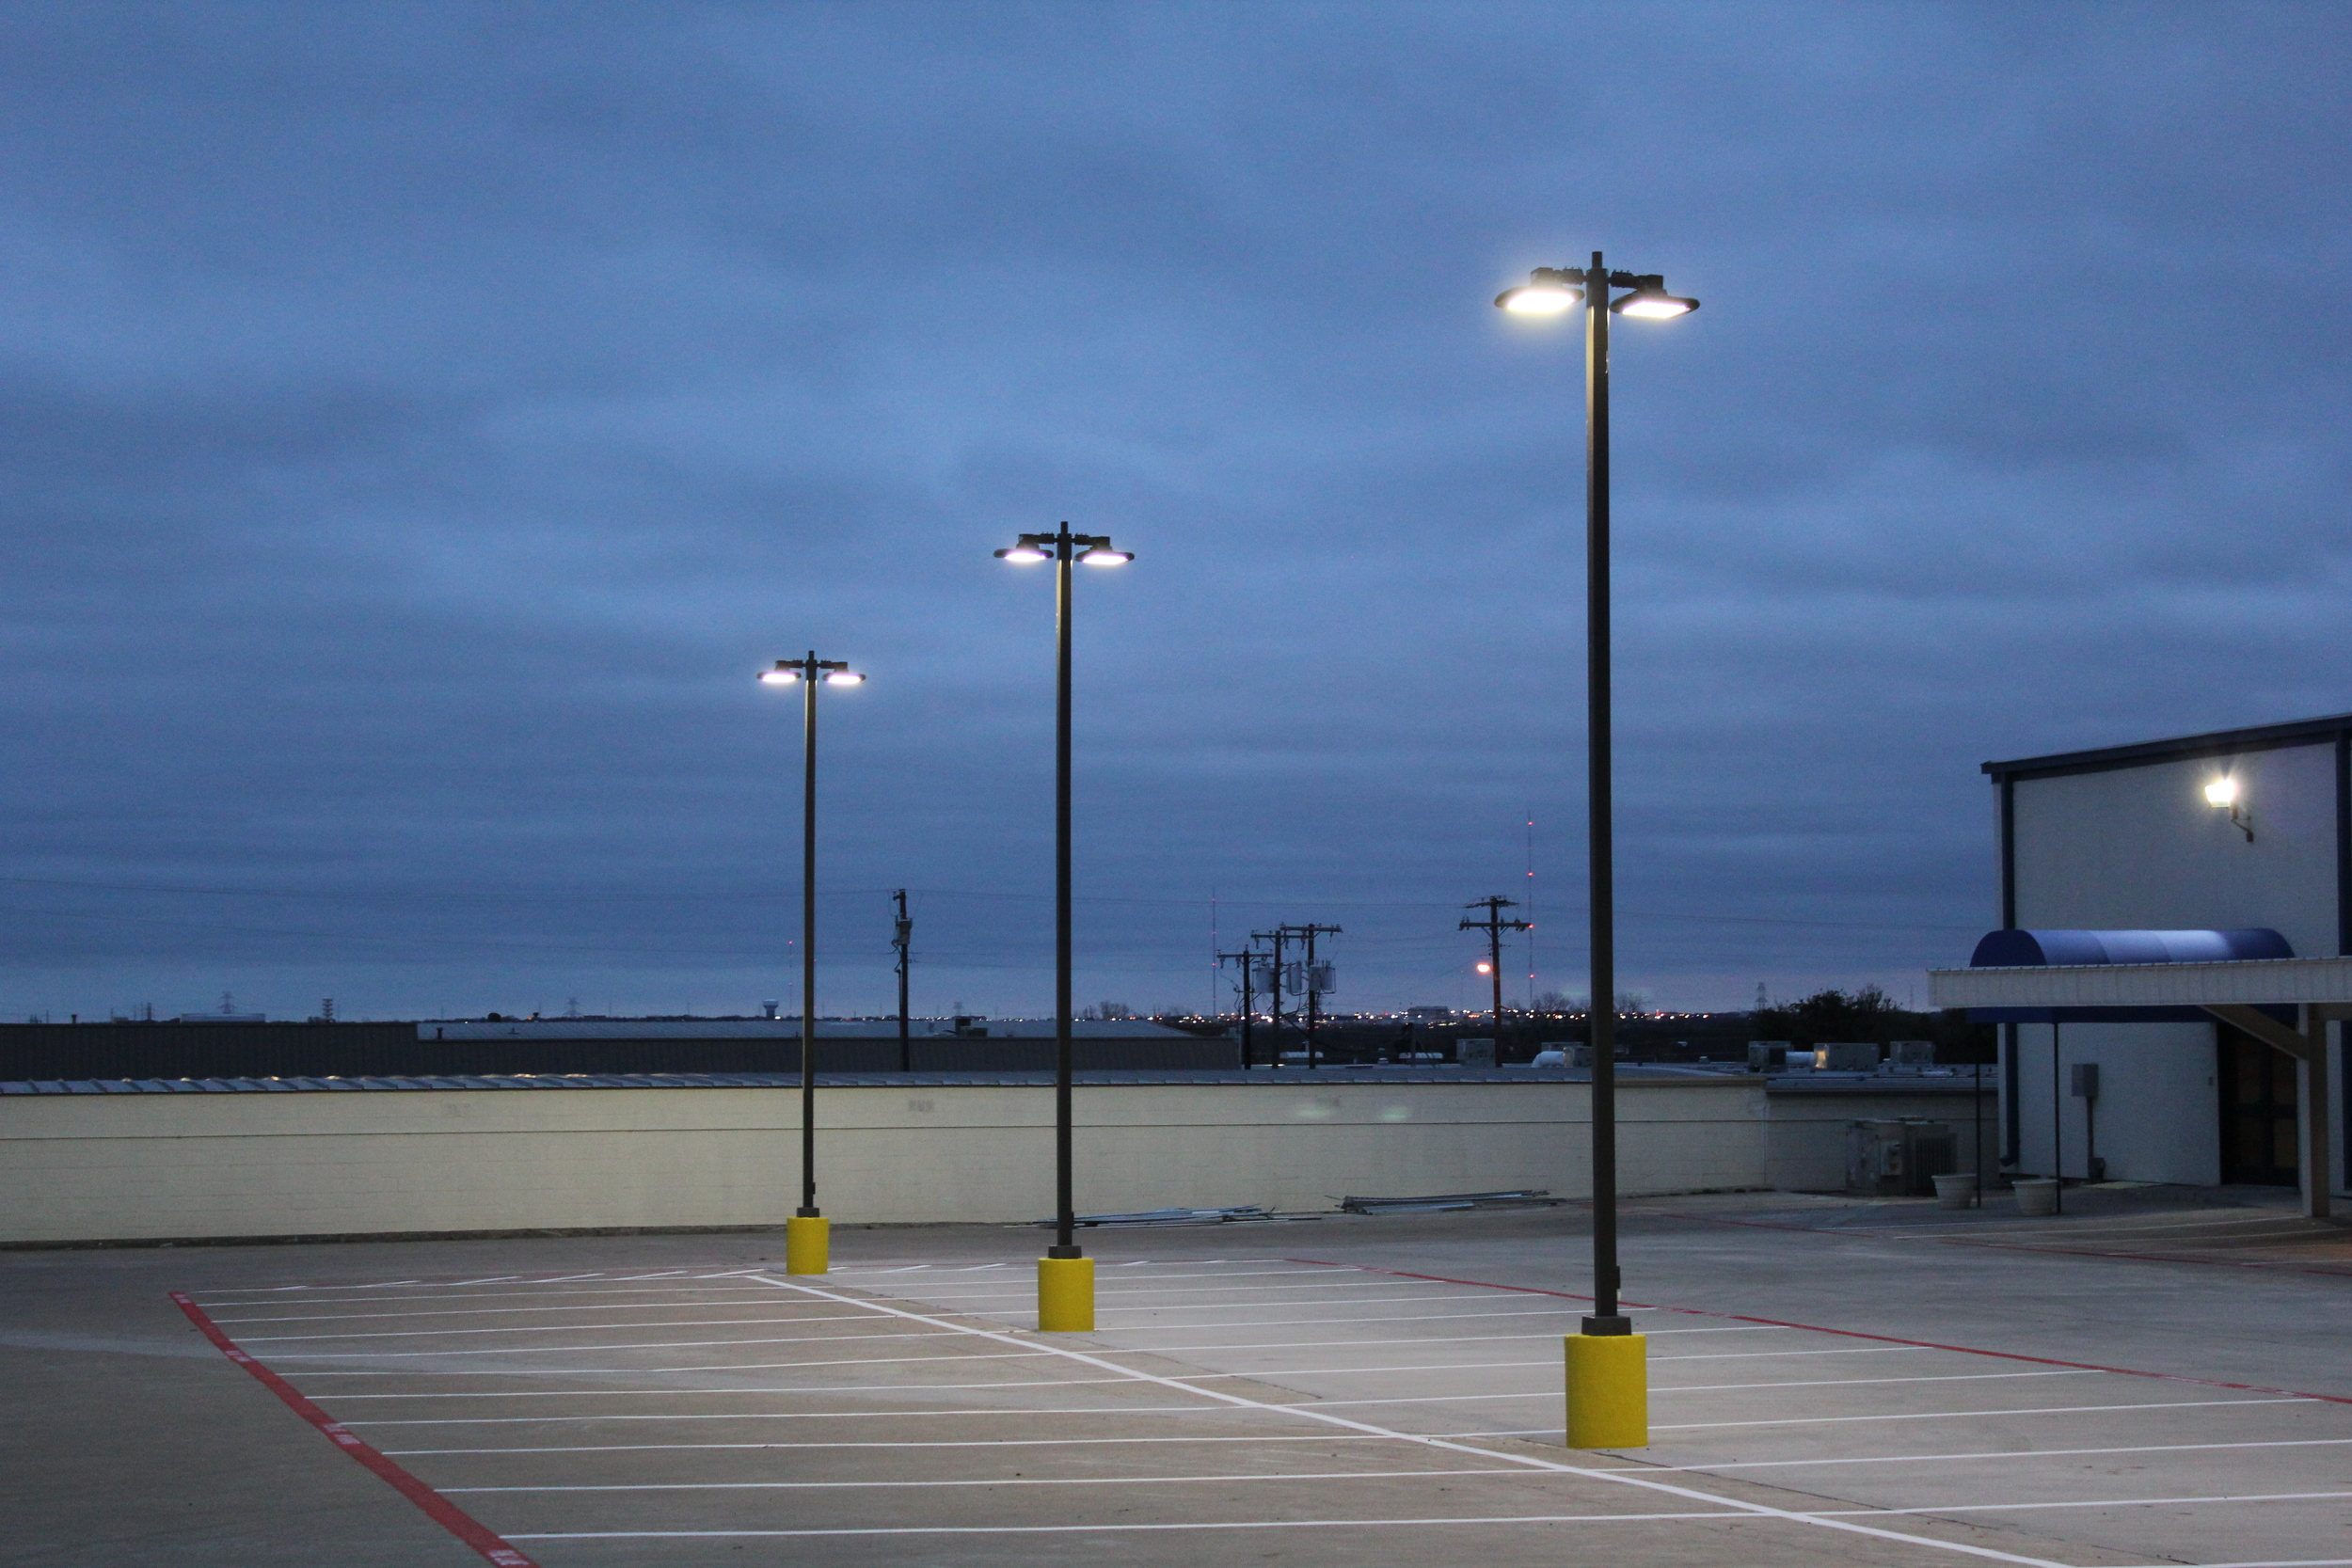 and efficient westgreen after study case plaza slide light parking center lot for power lighting before tech bar shopping